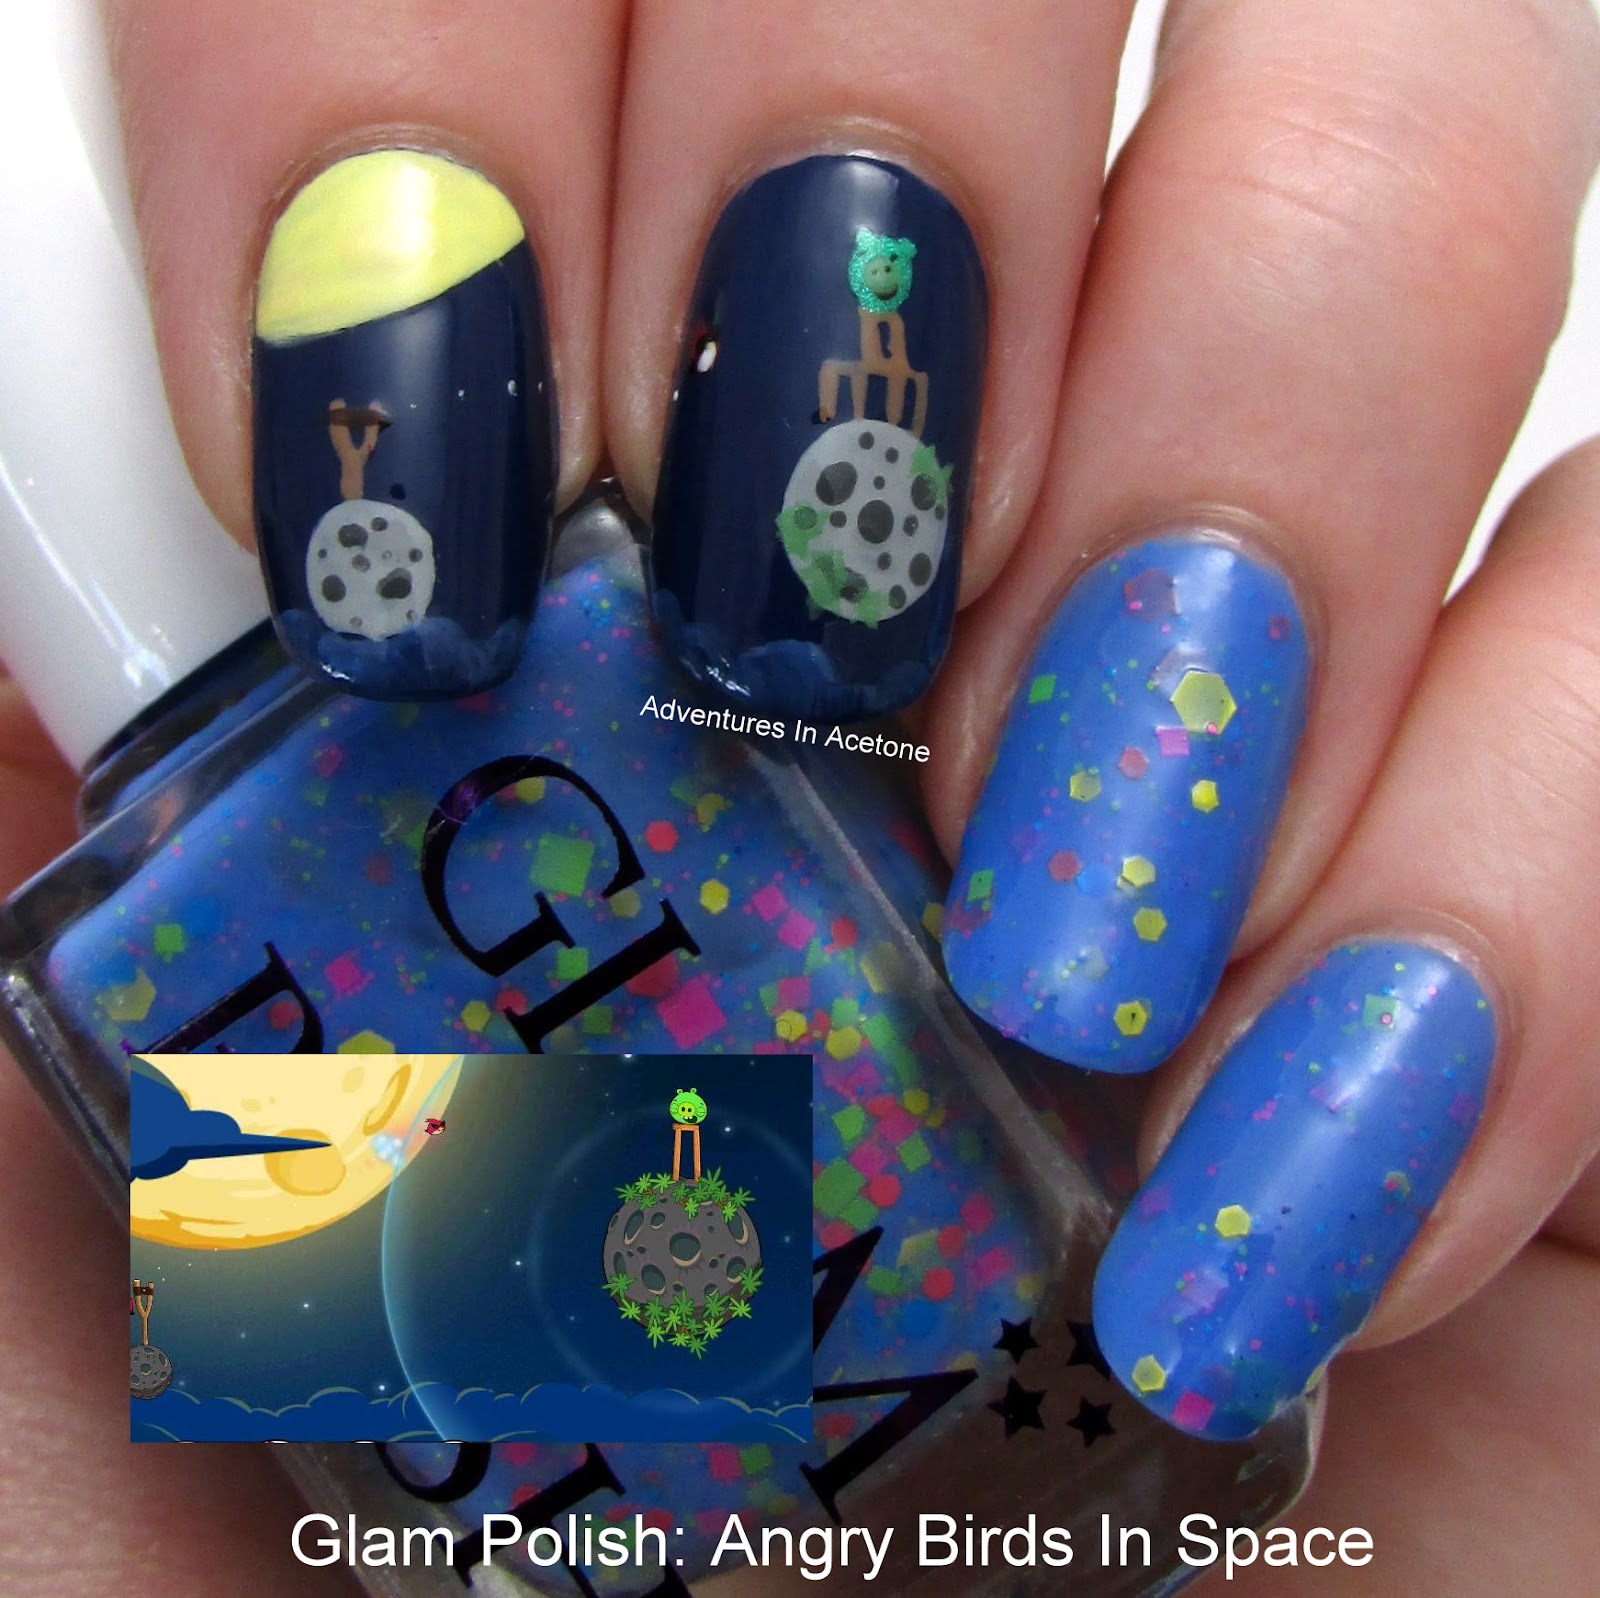 Glam Polish Angry Birds In Space + Nail Art! - Adventures In Acetone